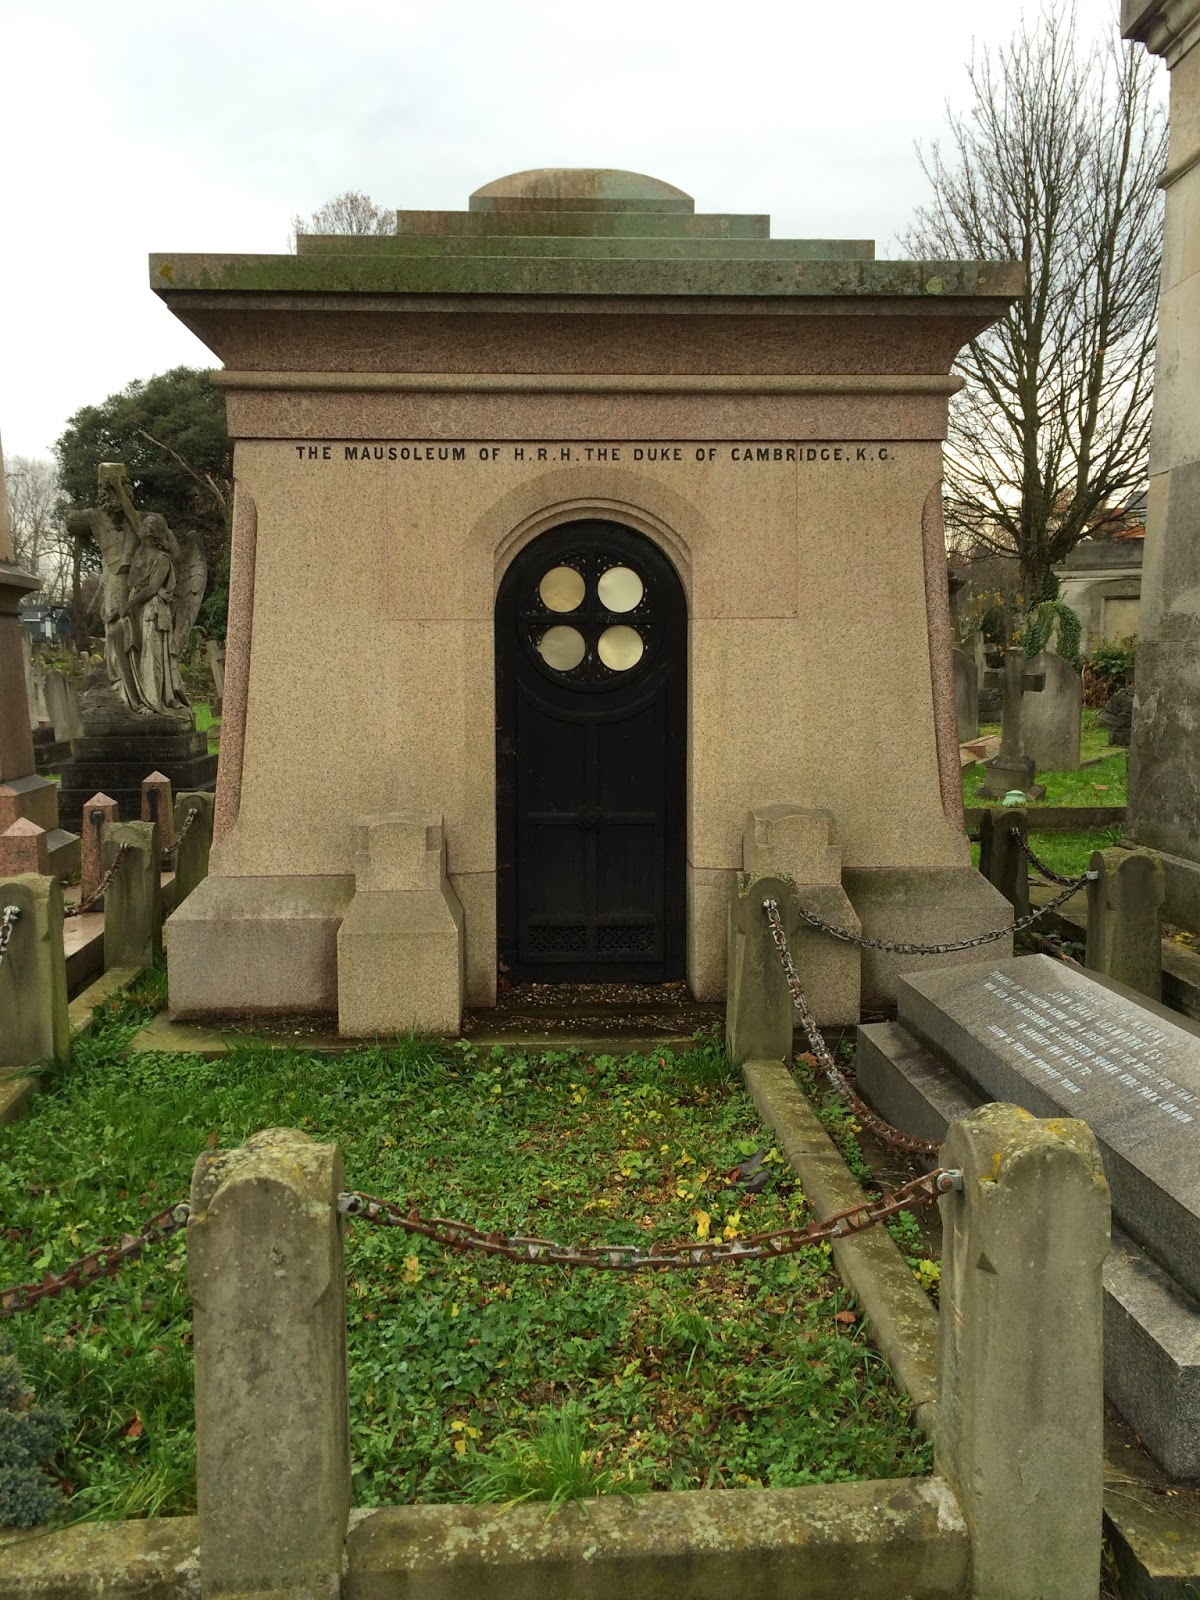 kensal green cemetery in the twentieth cemetery british cemetery and cremation records from deceased online